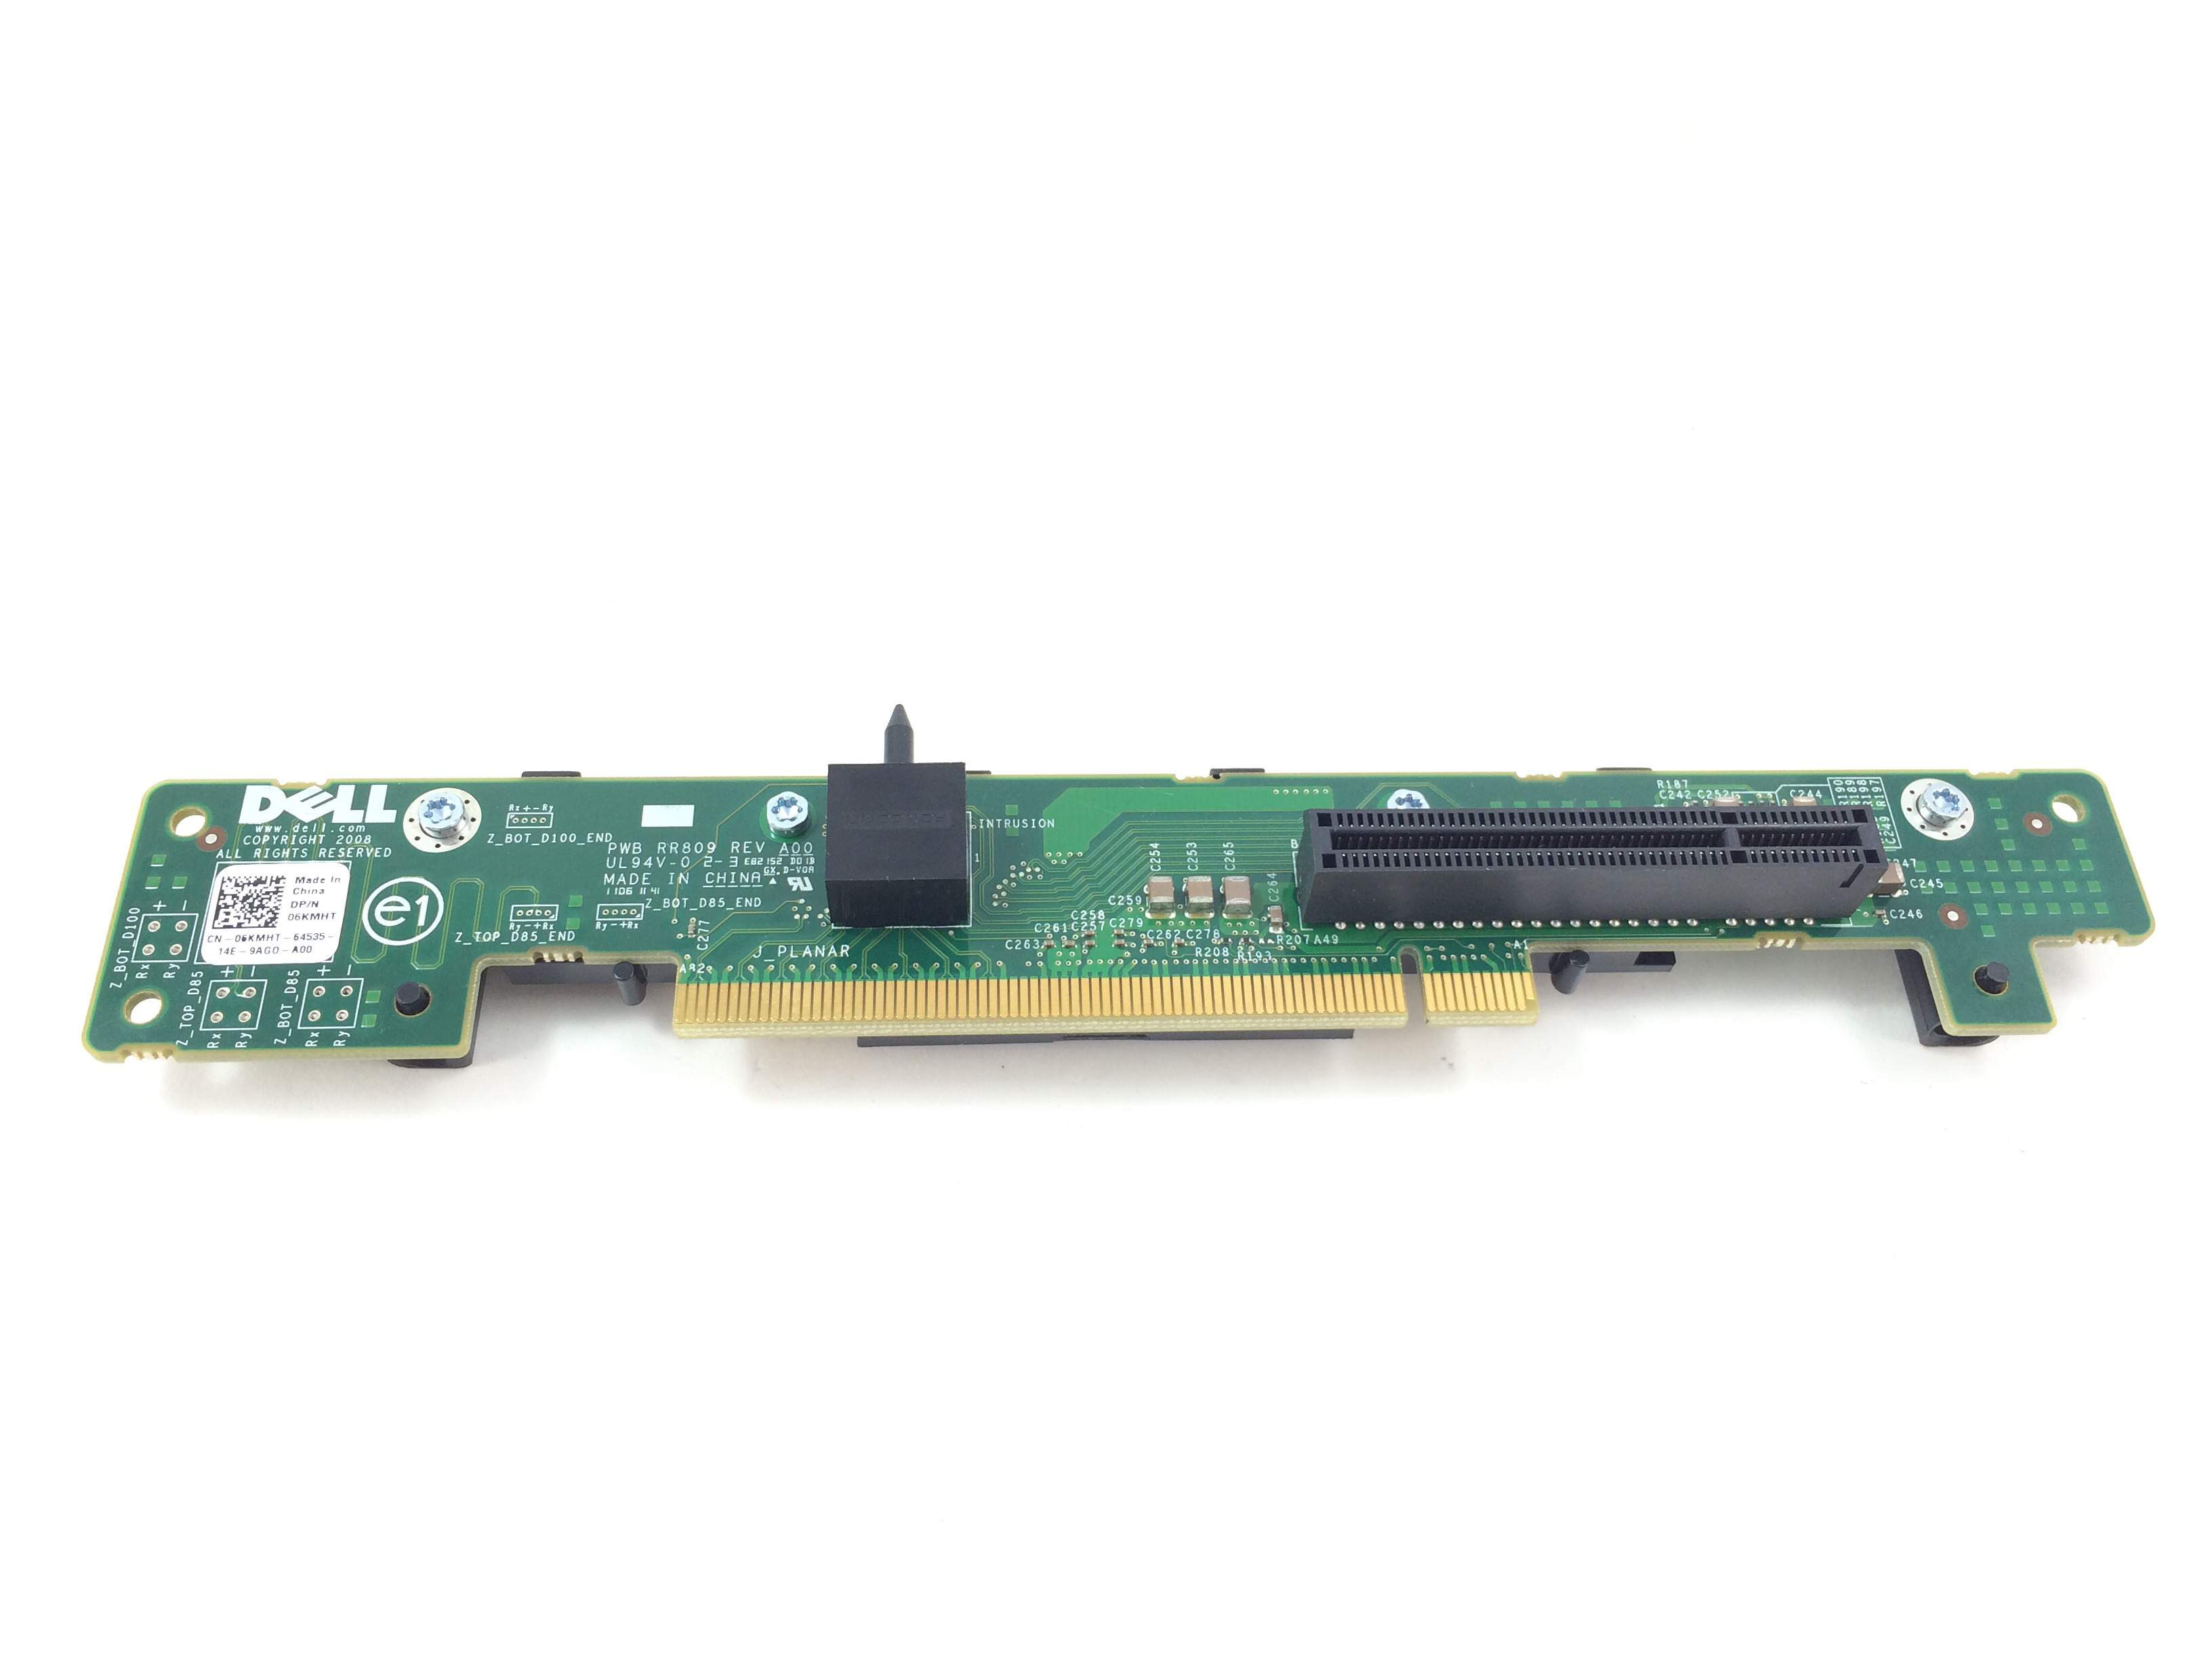 Dell PowerEdge R610 PCI-E 8X Left Riser Card (6KMHT)